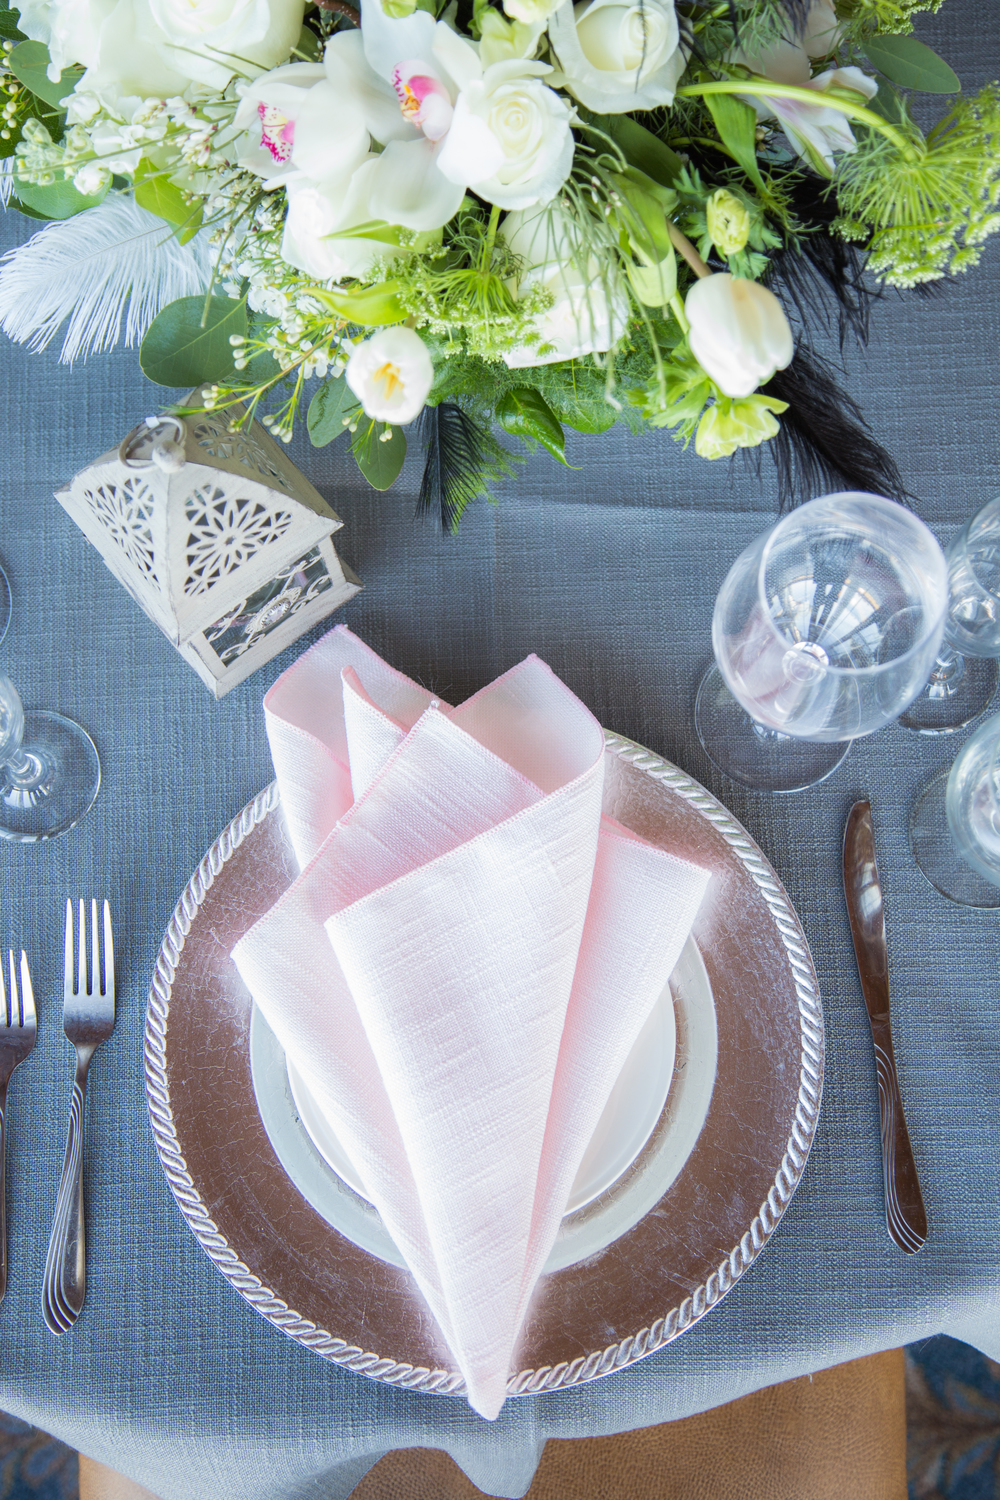 Switching to pink napkins adds a soft pop of color and gives a totally different vibe.